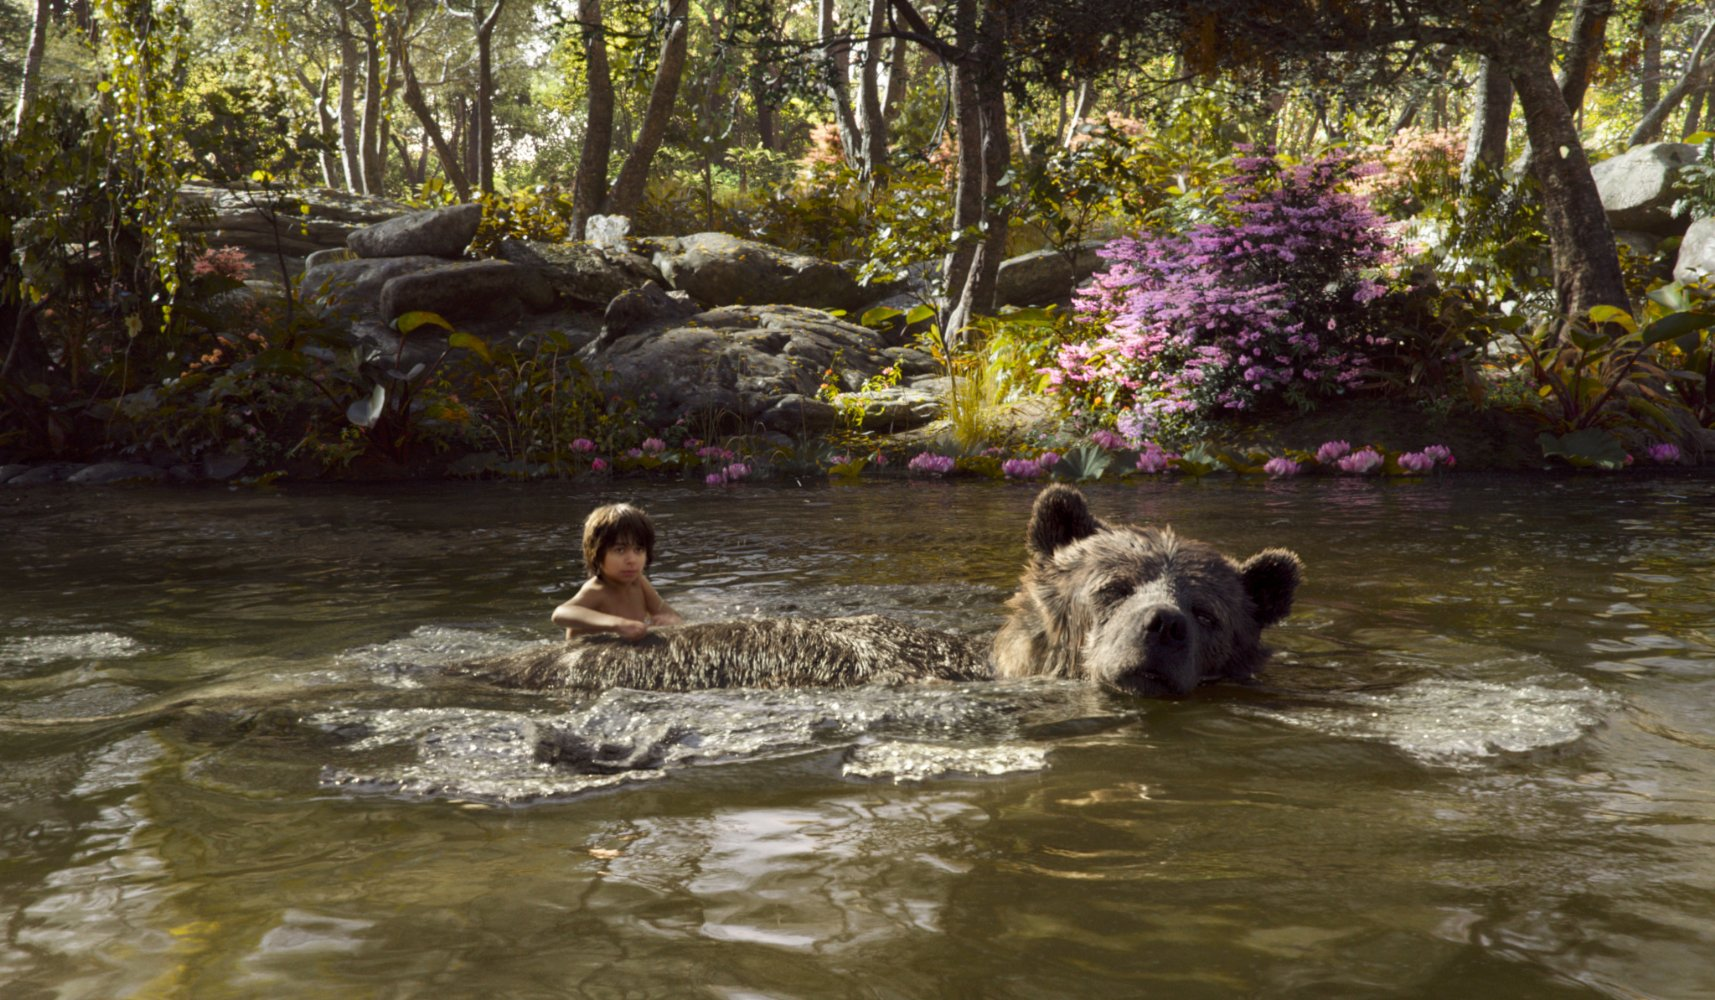 THE JUNGLE BOOK (Pictured) MOWGLI and BALOO. ©2016 Disney Enterprises, Inc. All Rights Reserved.